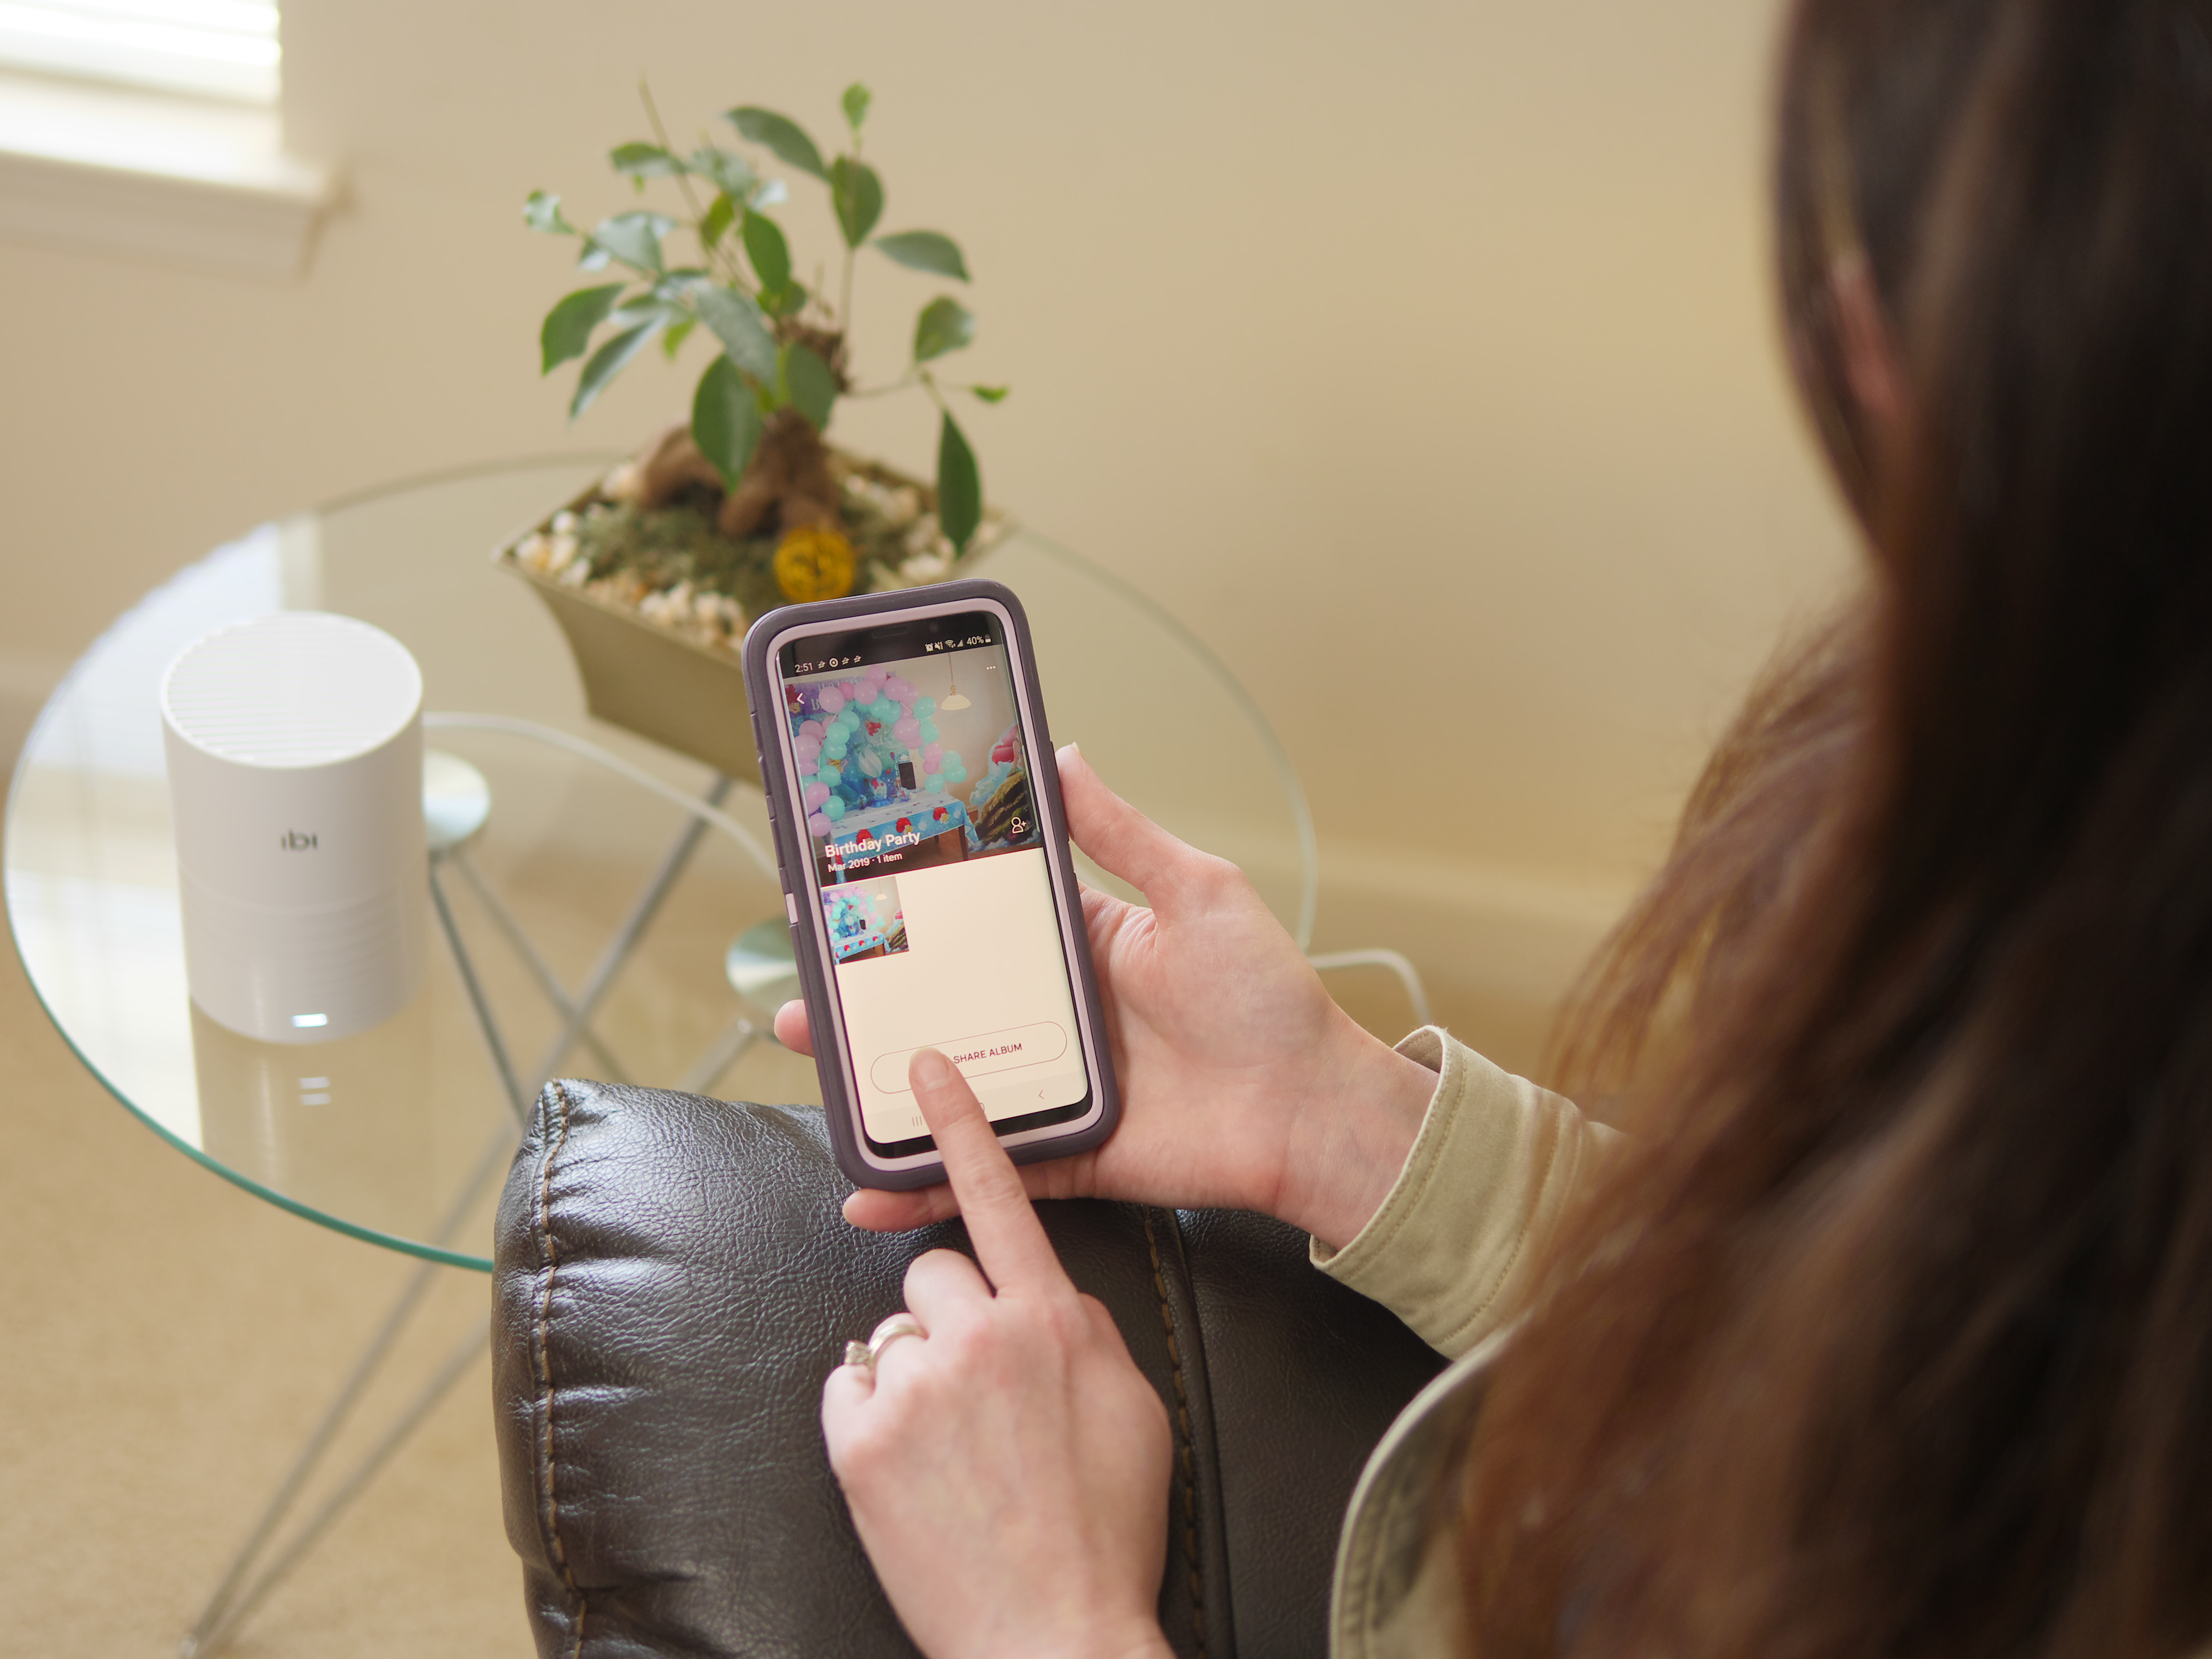 #Meetibi #IC #Sponsored - Not all moments are meant to be shared publicly. For sharing special occasions privately, ibi is a device that makes photo sharing simple. - Theresa's Reviews